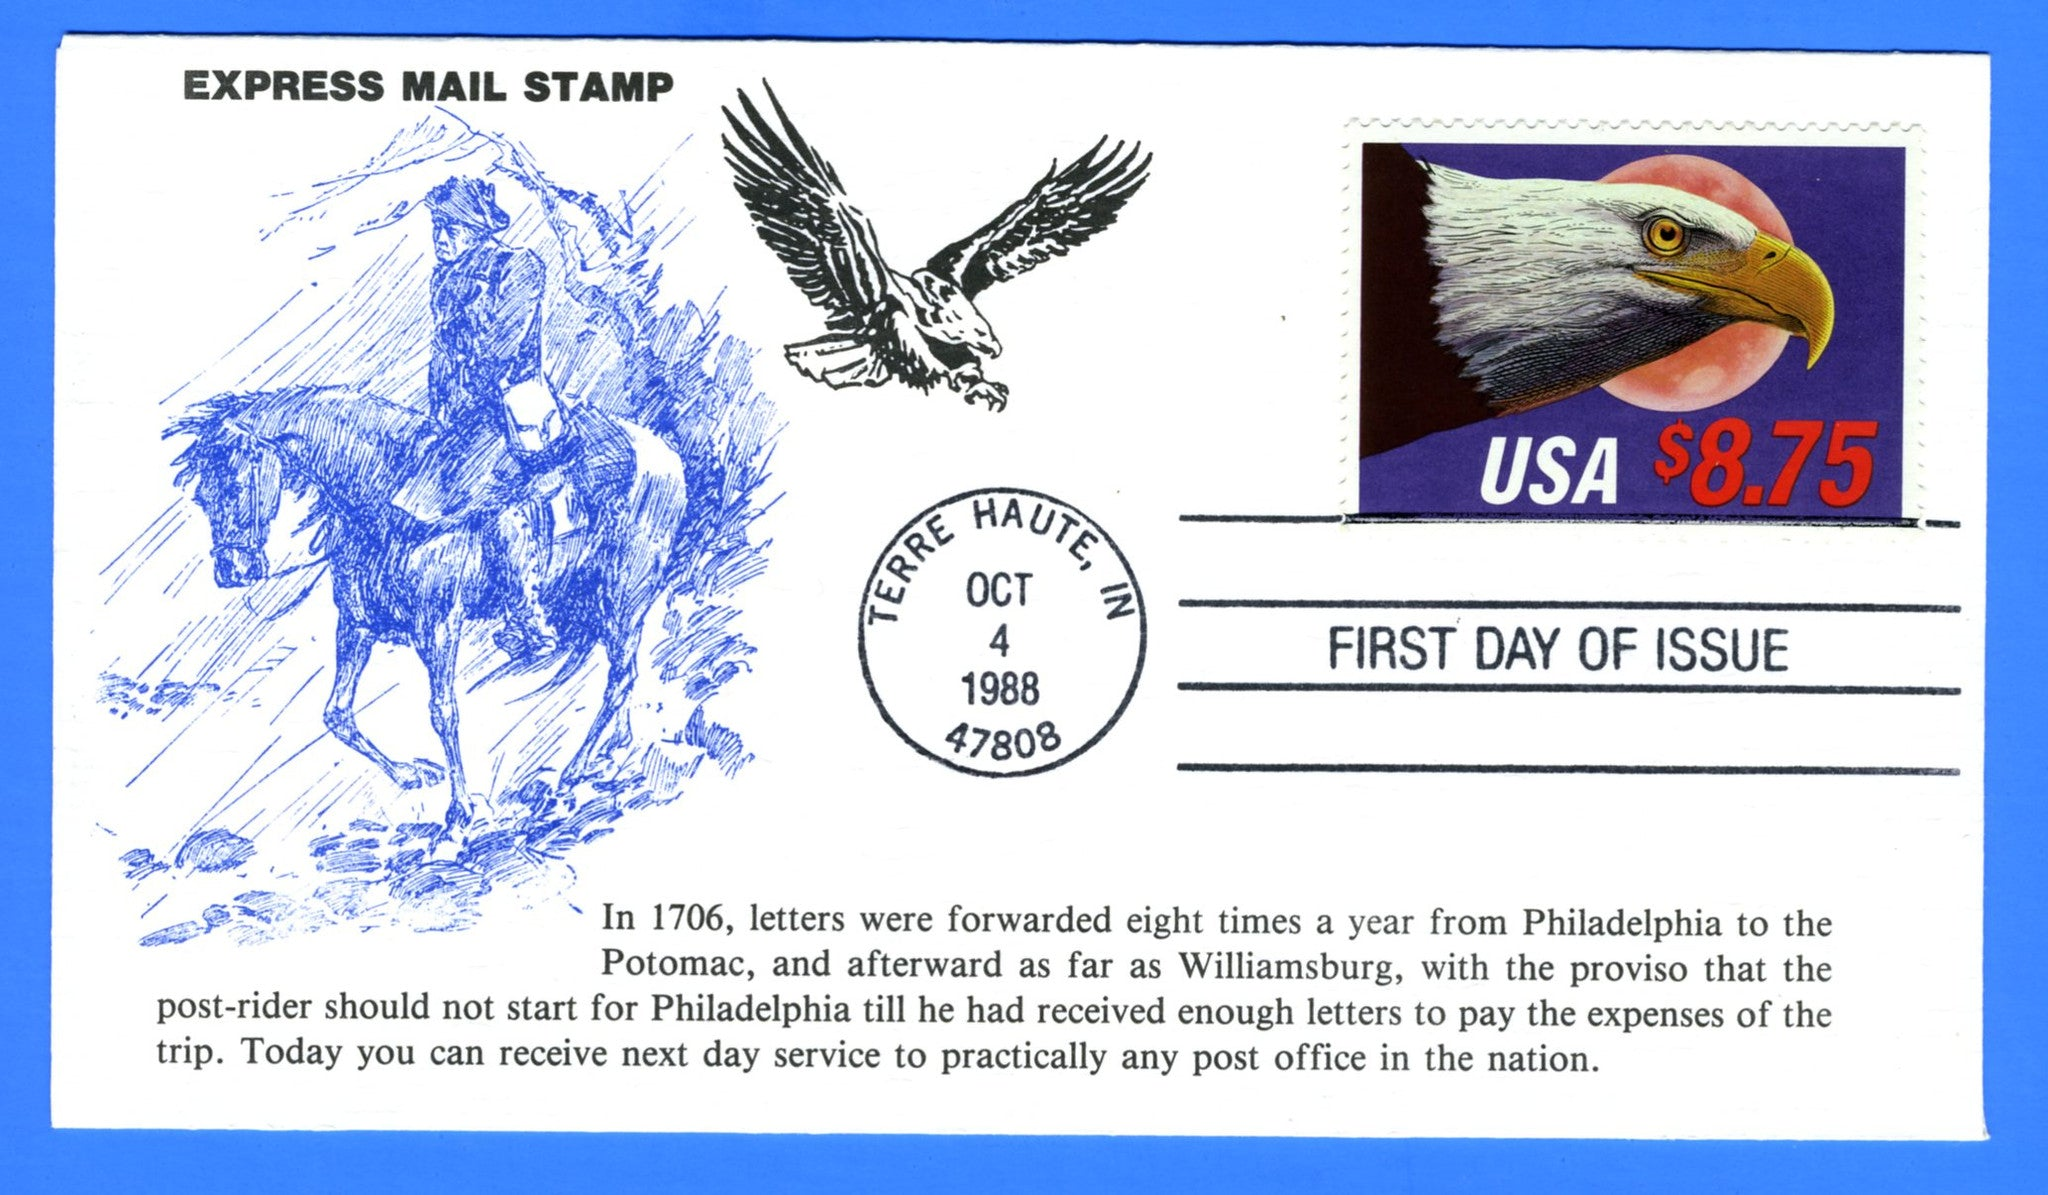 Scott 2394 $8.75 Eagle & Moon Express Mail First Day Cover by KMC Venture